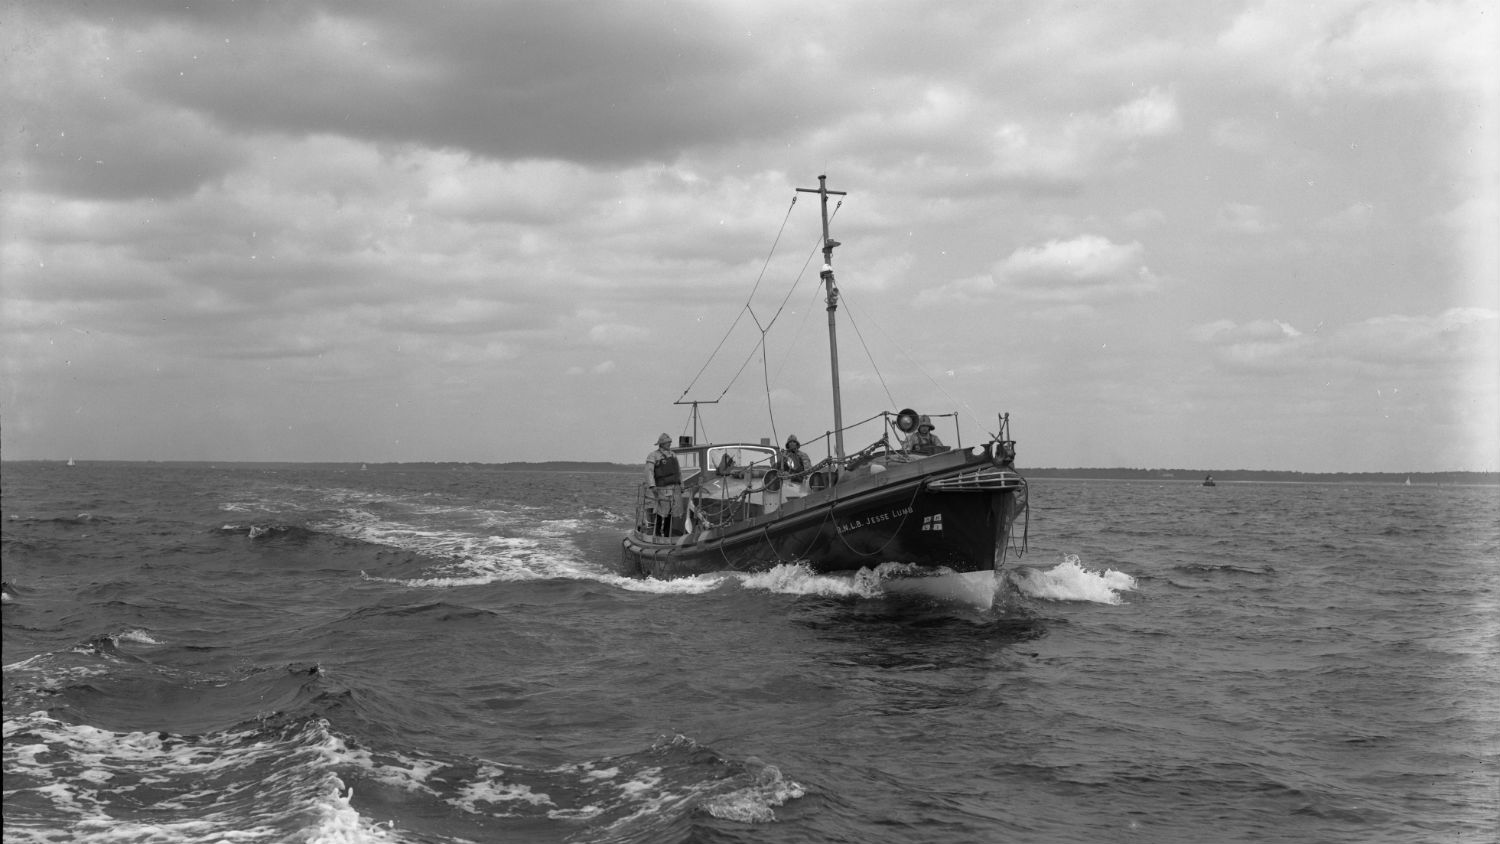 Black and white image of Bembridge lifeboat, Jesse Lumb, while on trials